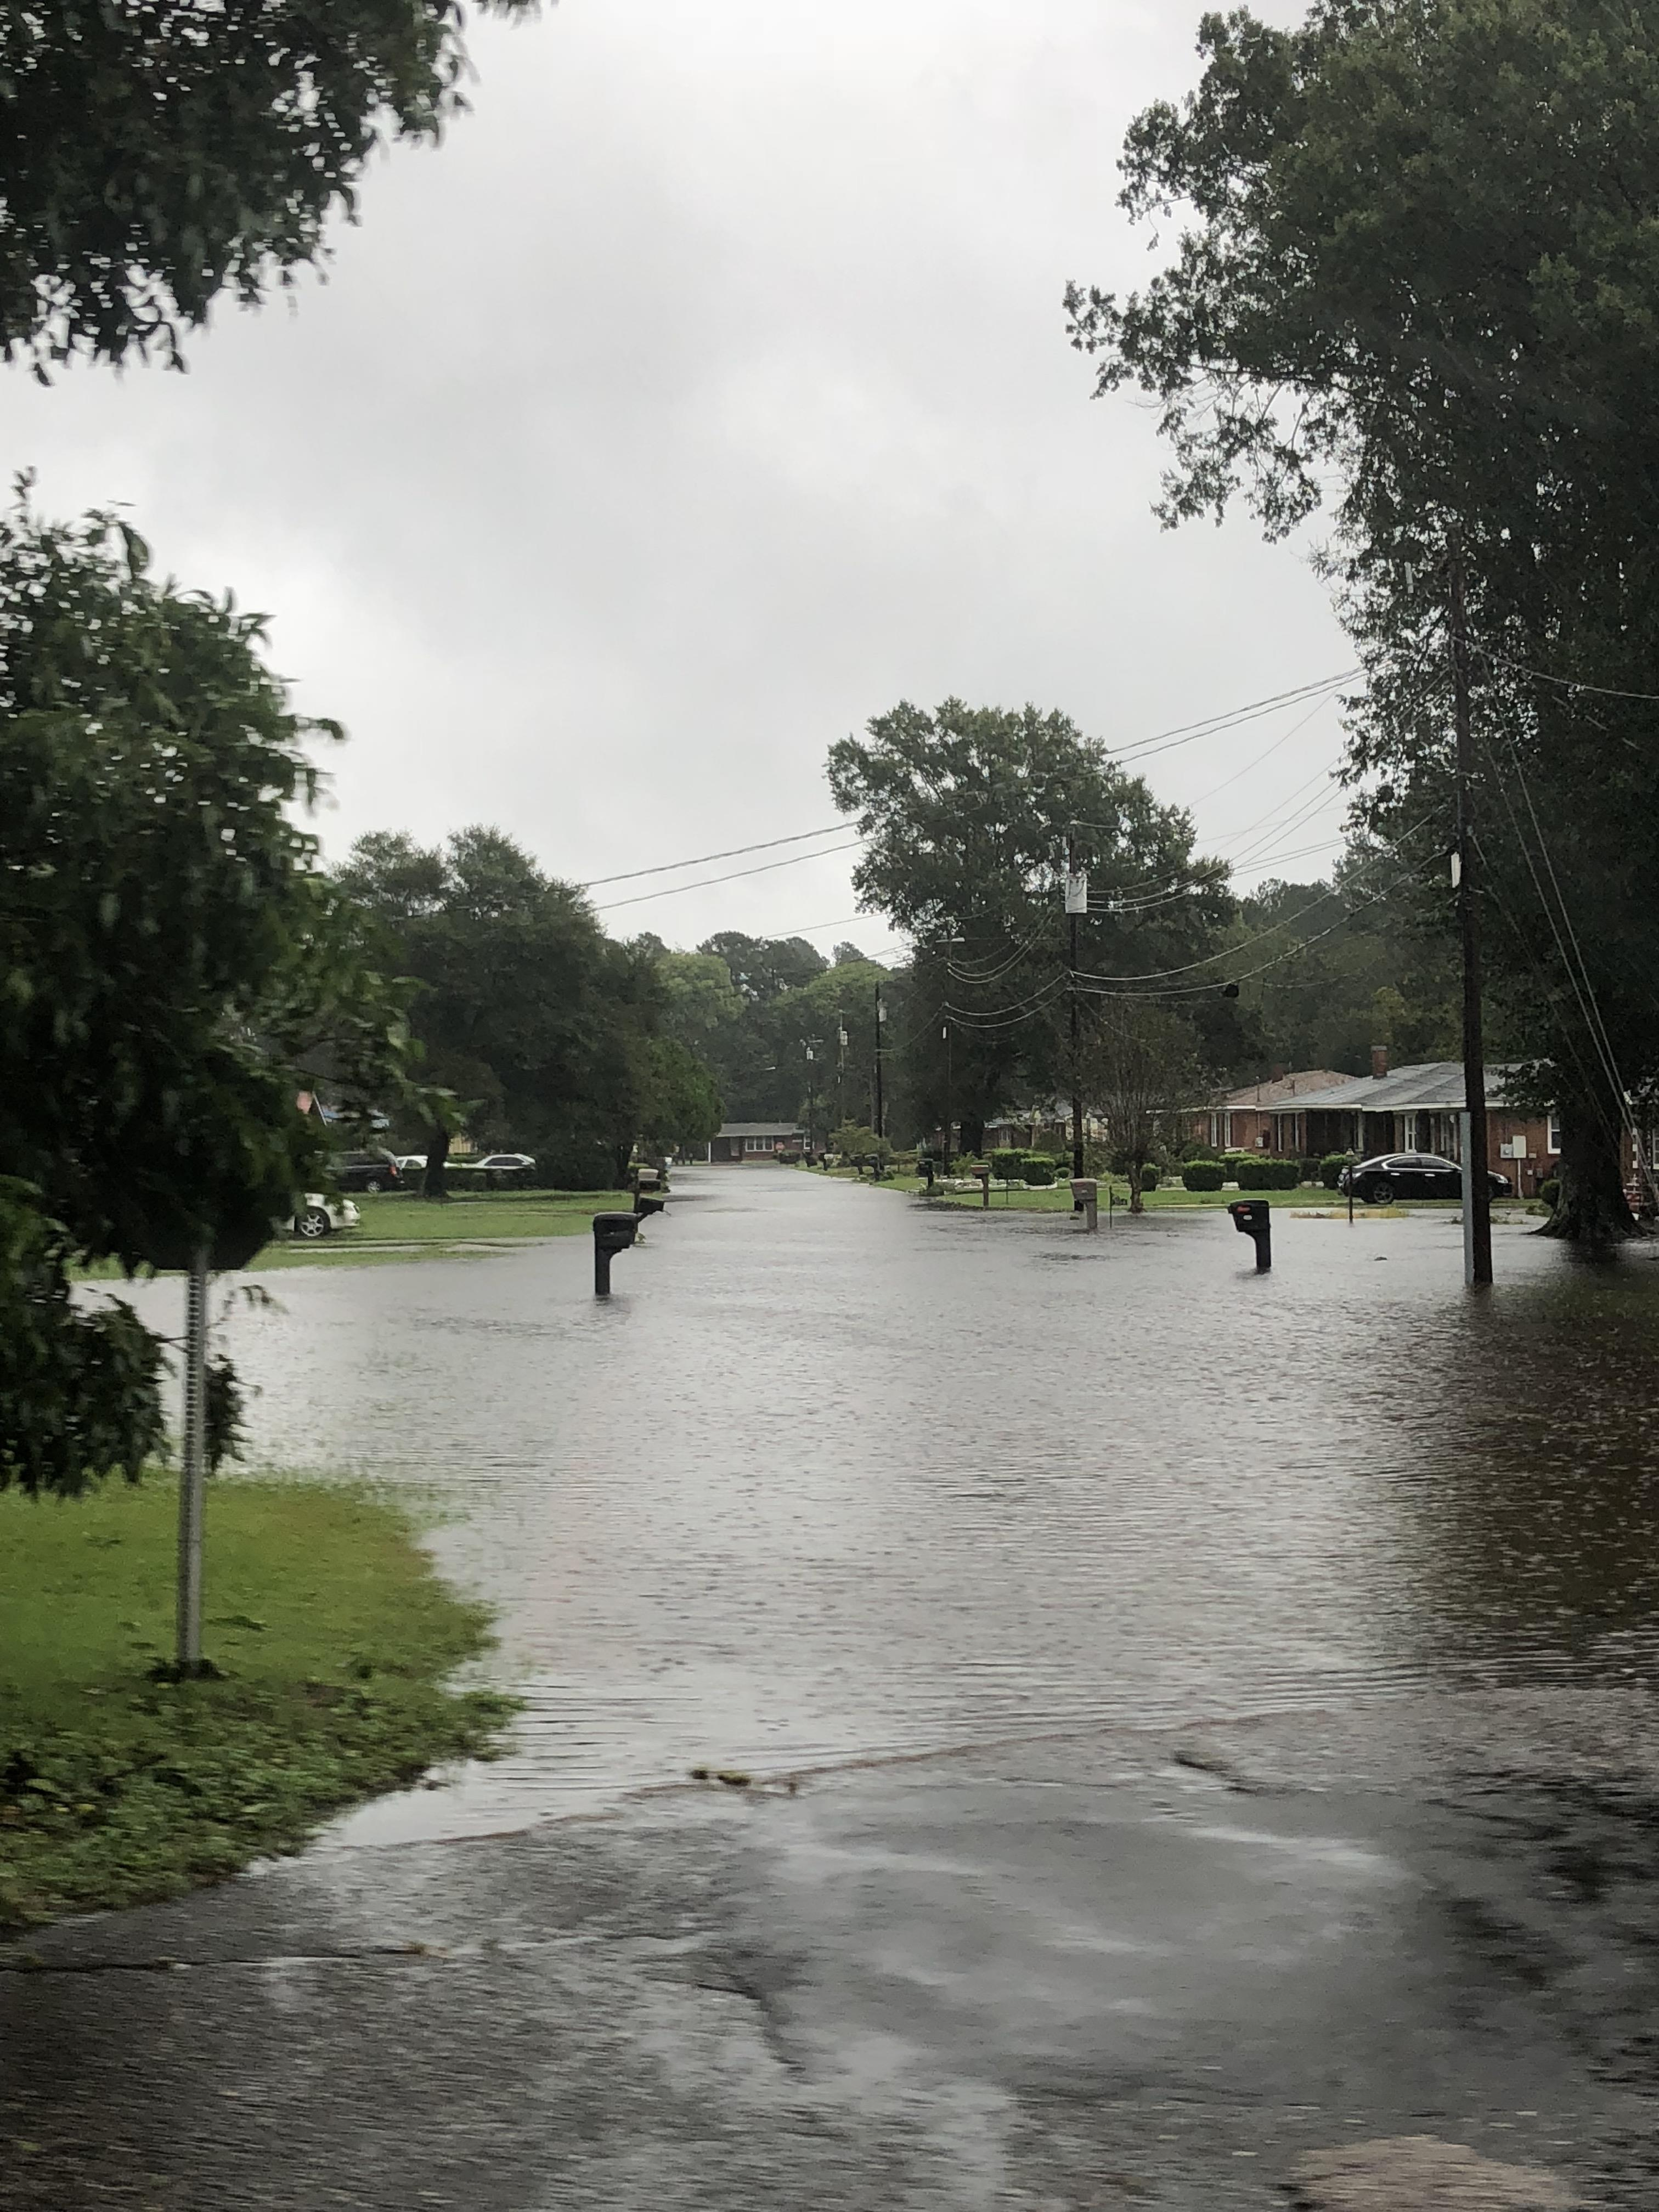 "<div class=""meta image-caption""><div class=""origin-logo origin-image wtvd""><span>WTVD</span></div><span class=""caption-text"">Flash flooding in a neighborhood in Goldsboro. (ABC11 Eyewitness)</span></div>"